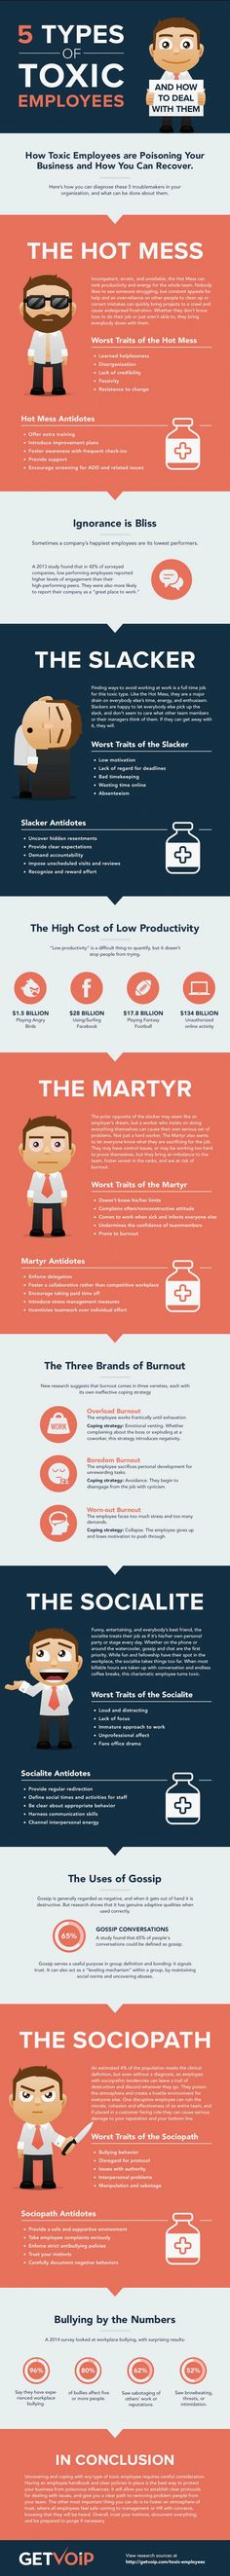 How to Deal with Toxic Employees [INFOGRAPHIC] http://theundercoverrecruiter.com/deal-toxic-employees/